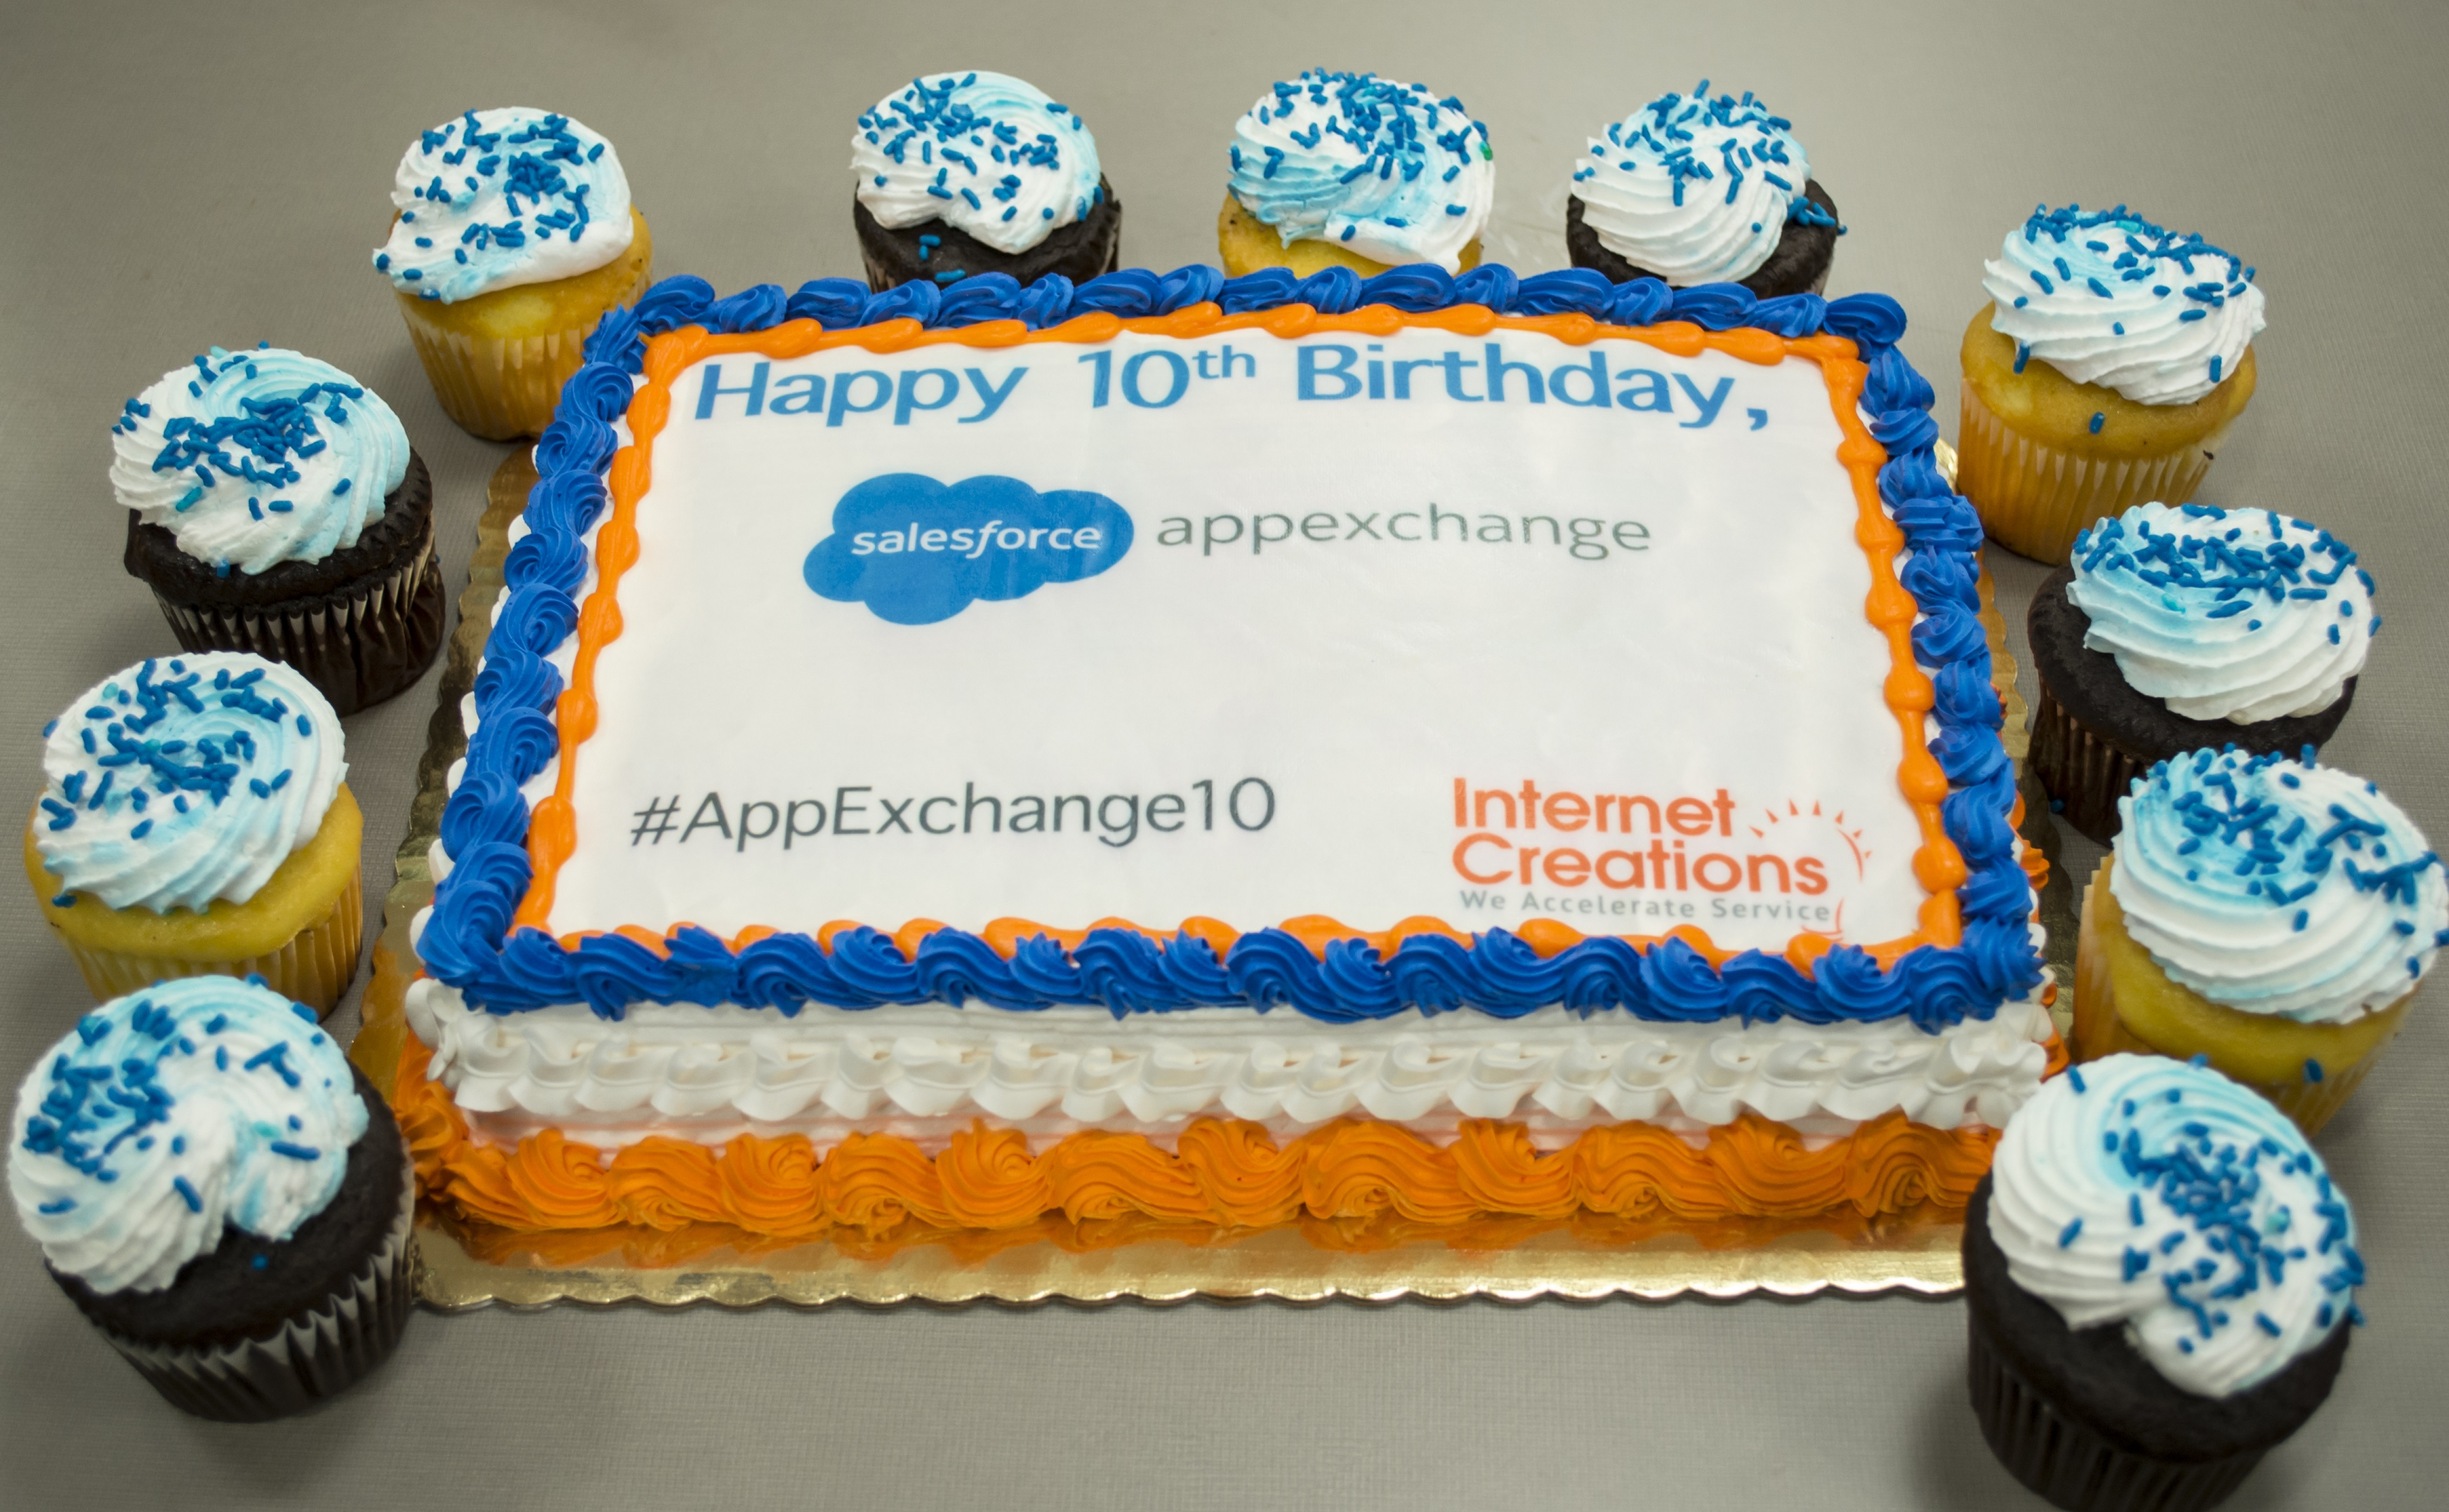 Internet Creations AppExchange 10 Cake